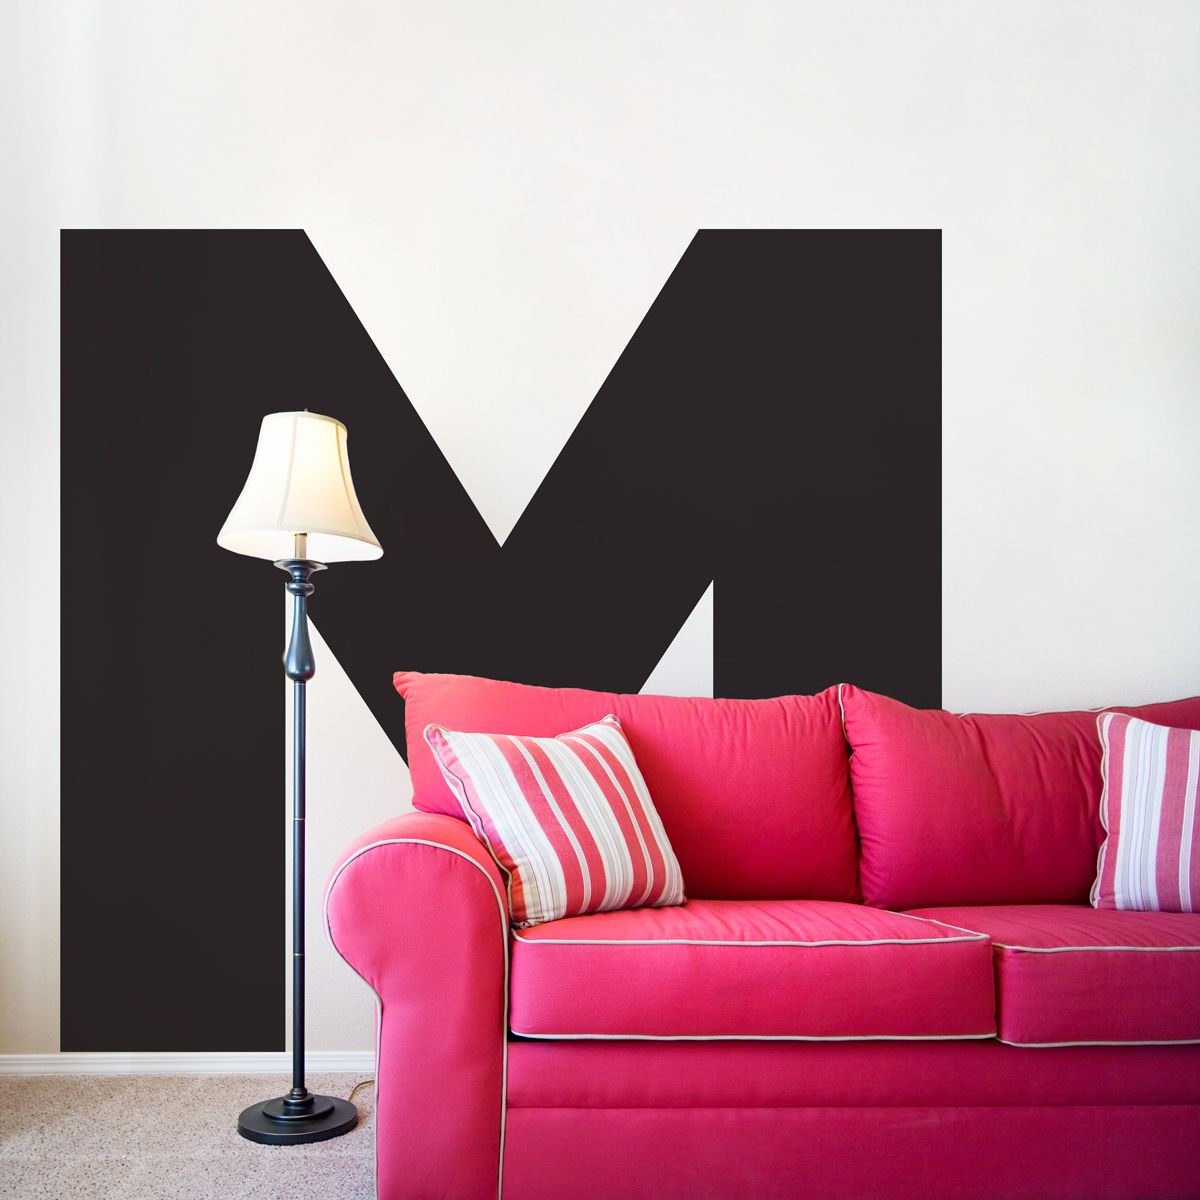 Large Letter Wall Decal   Pretty Much Perfect For Absolutely Any Room, Even  A Studio